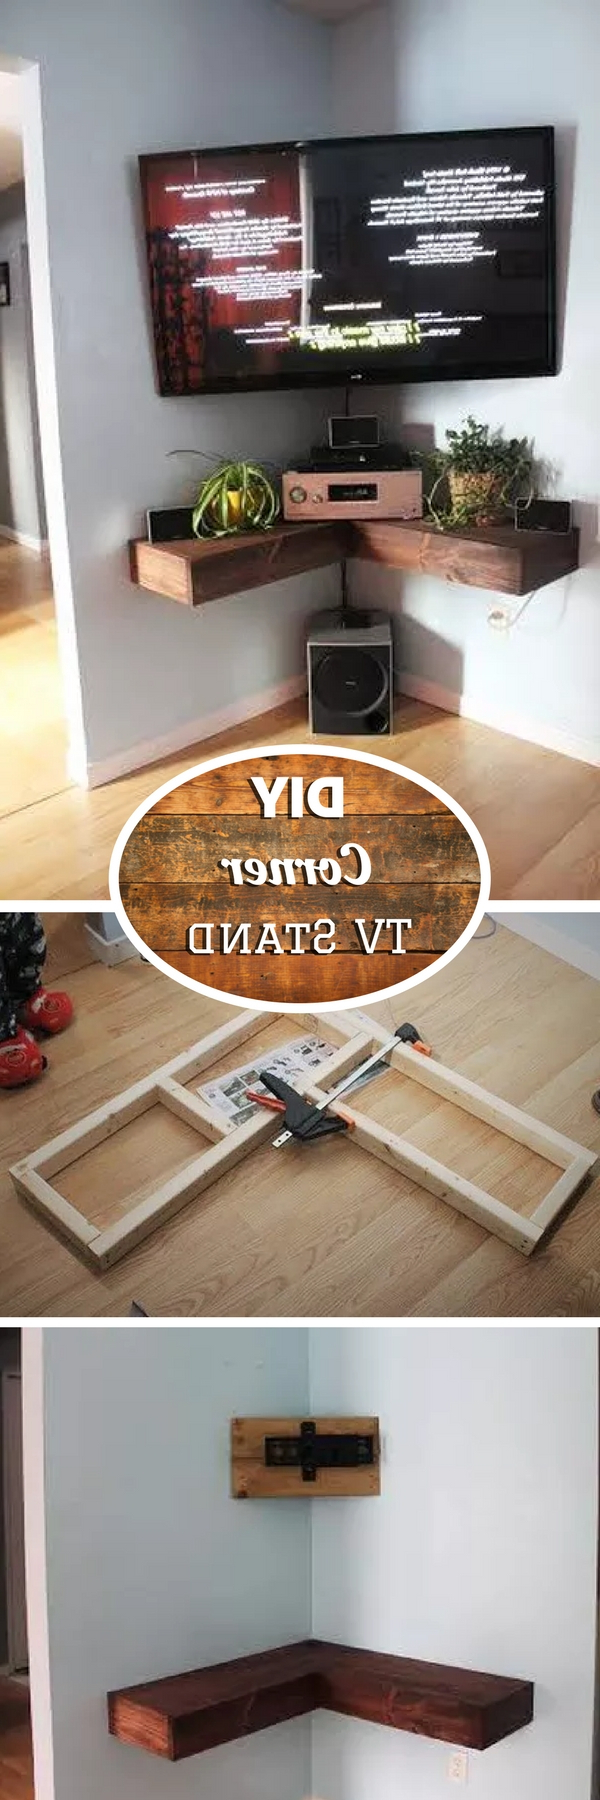 21+ Diy Tv Stand Ideas For Your Weekend Home Project Intended For Tobias Media Console Tables (Gallery 11 of 20)